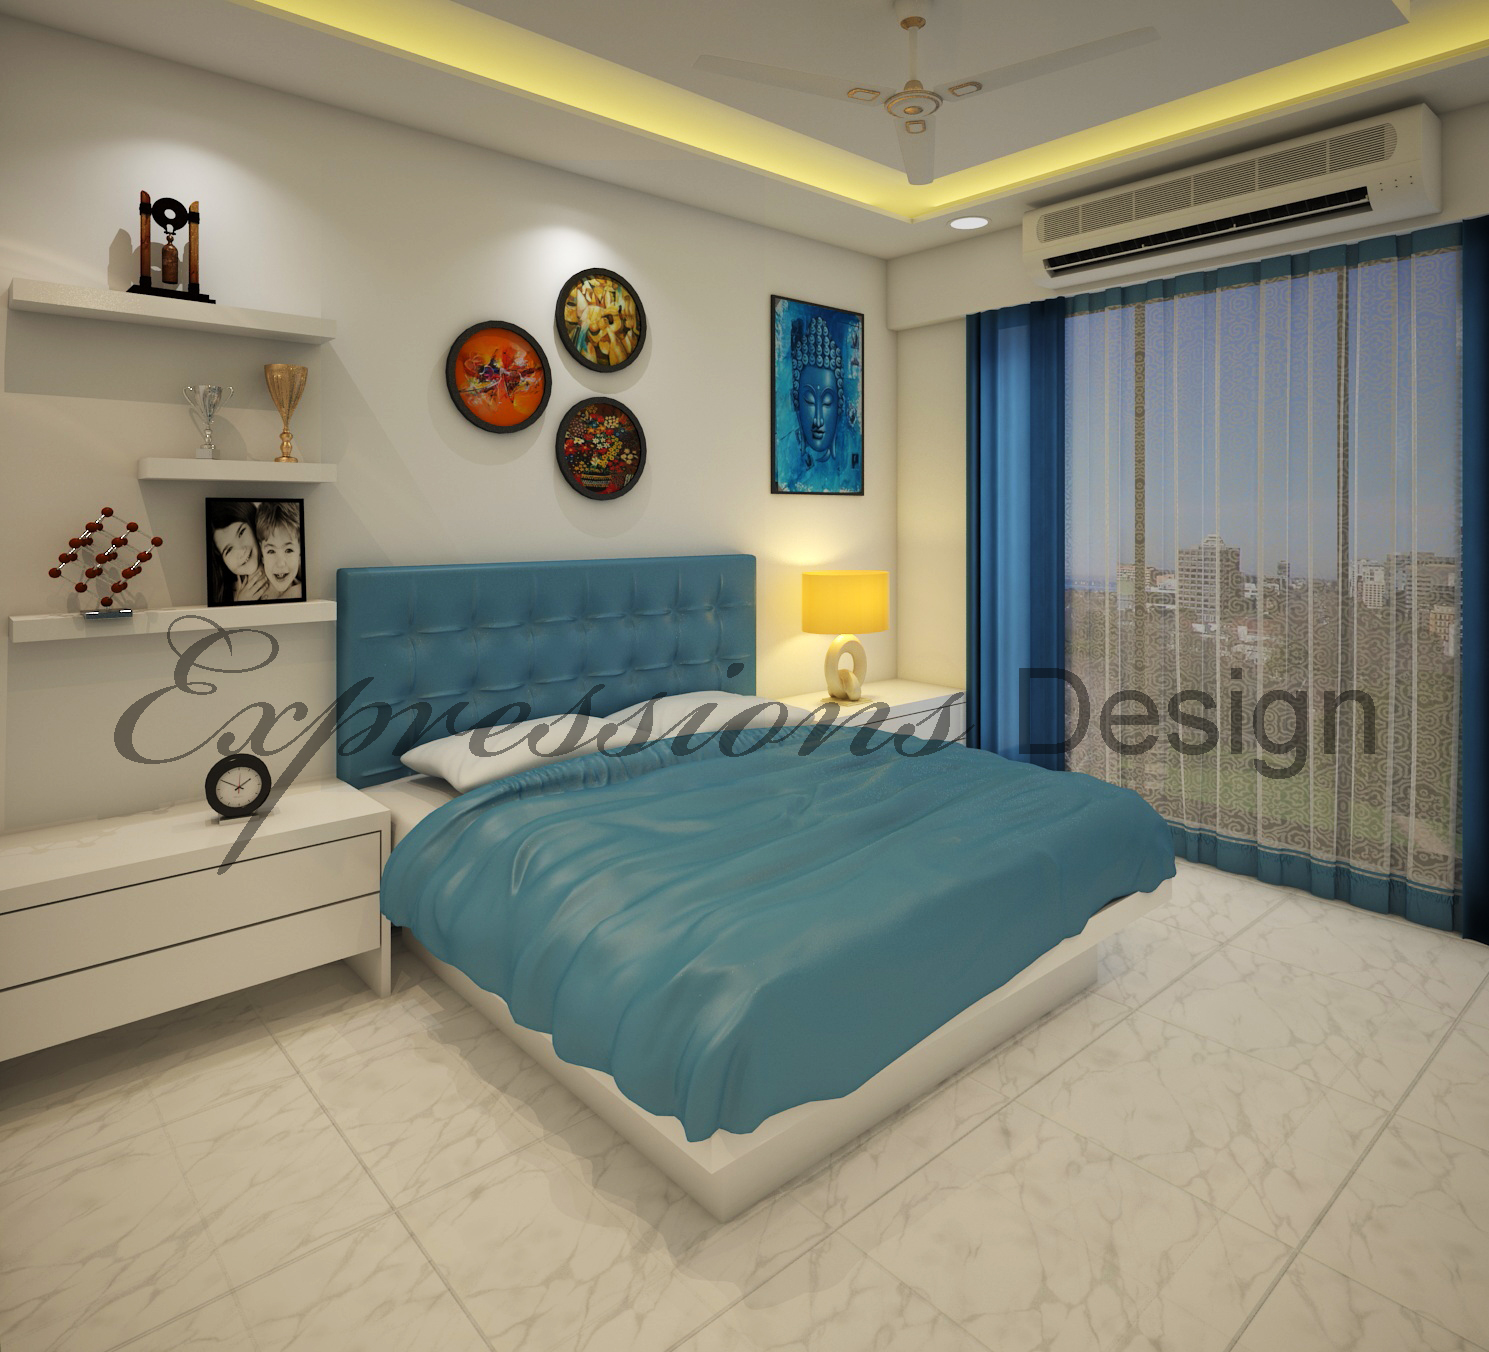 Residential Interior Design - Guest Room P2Pic4